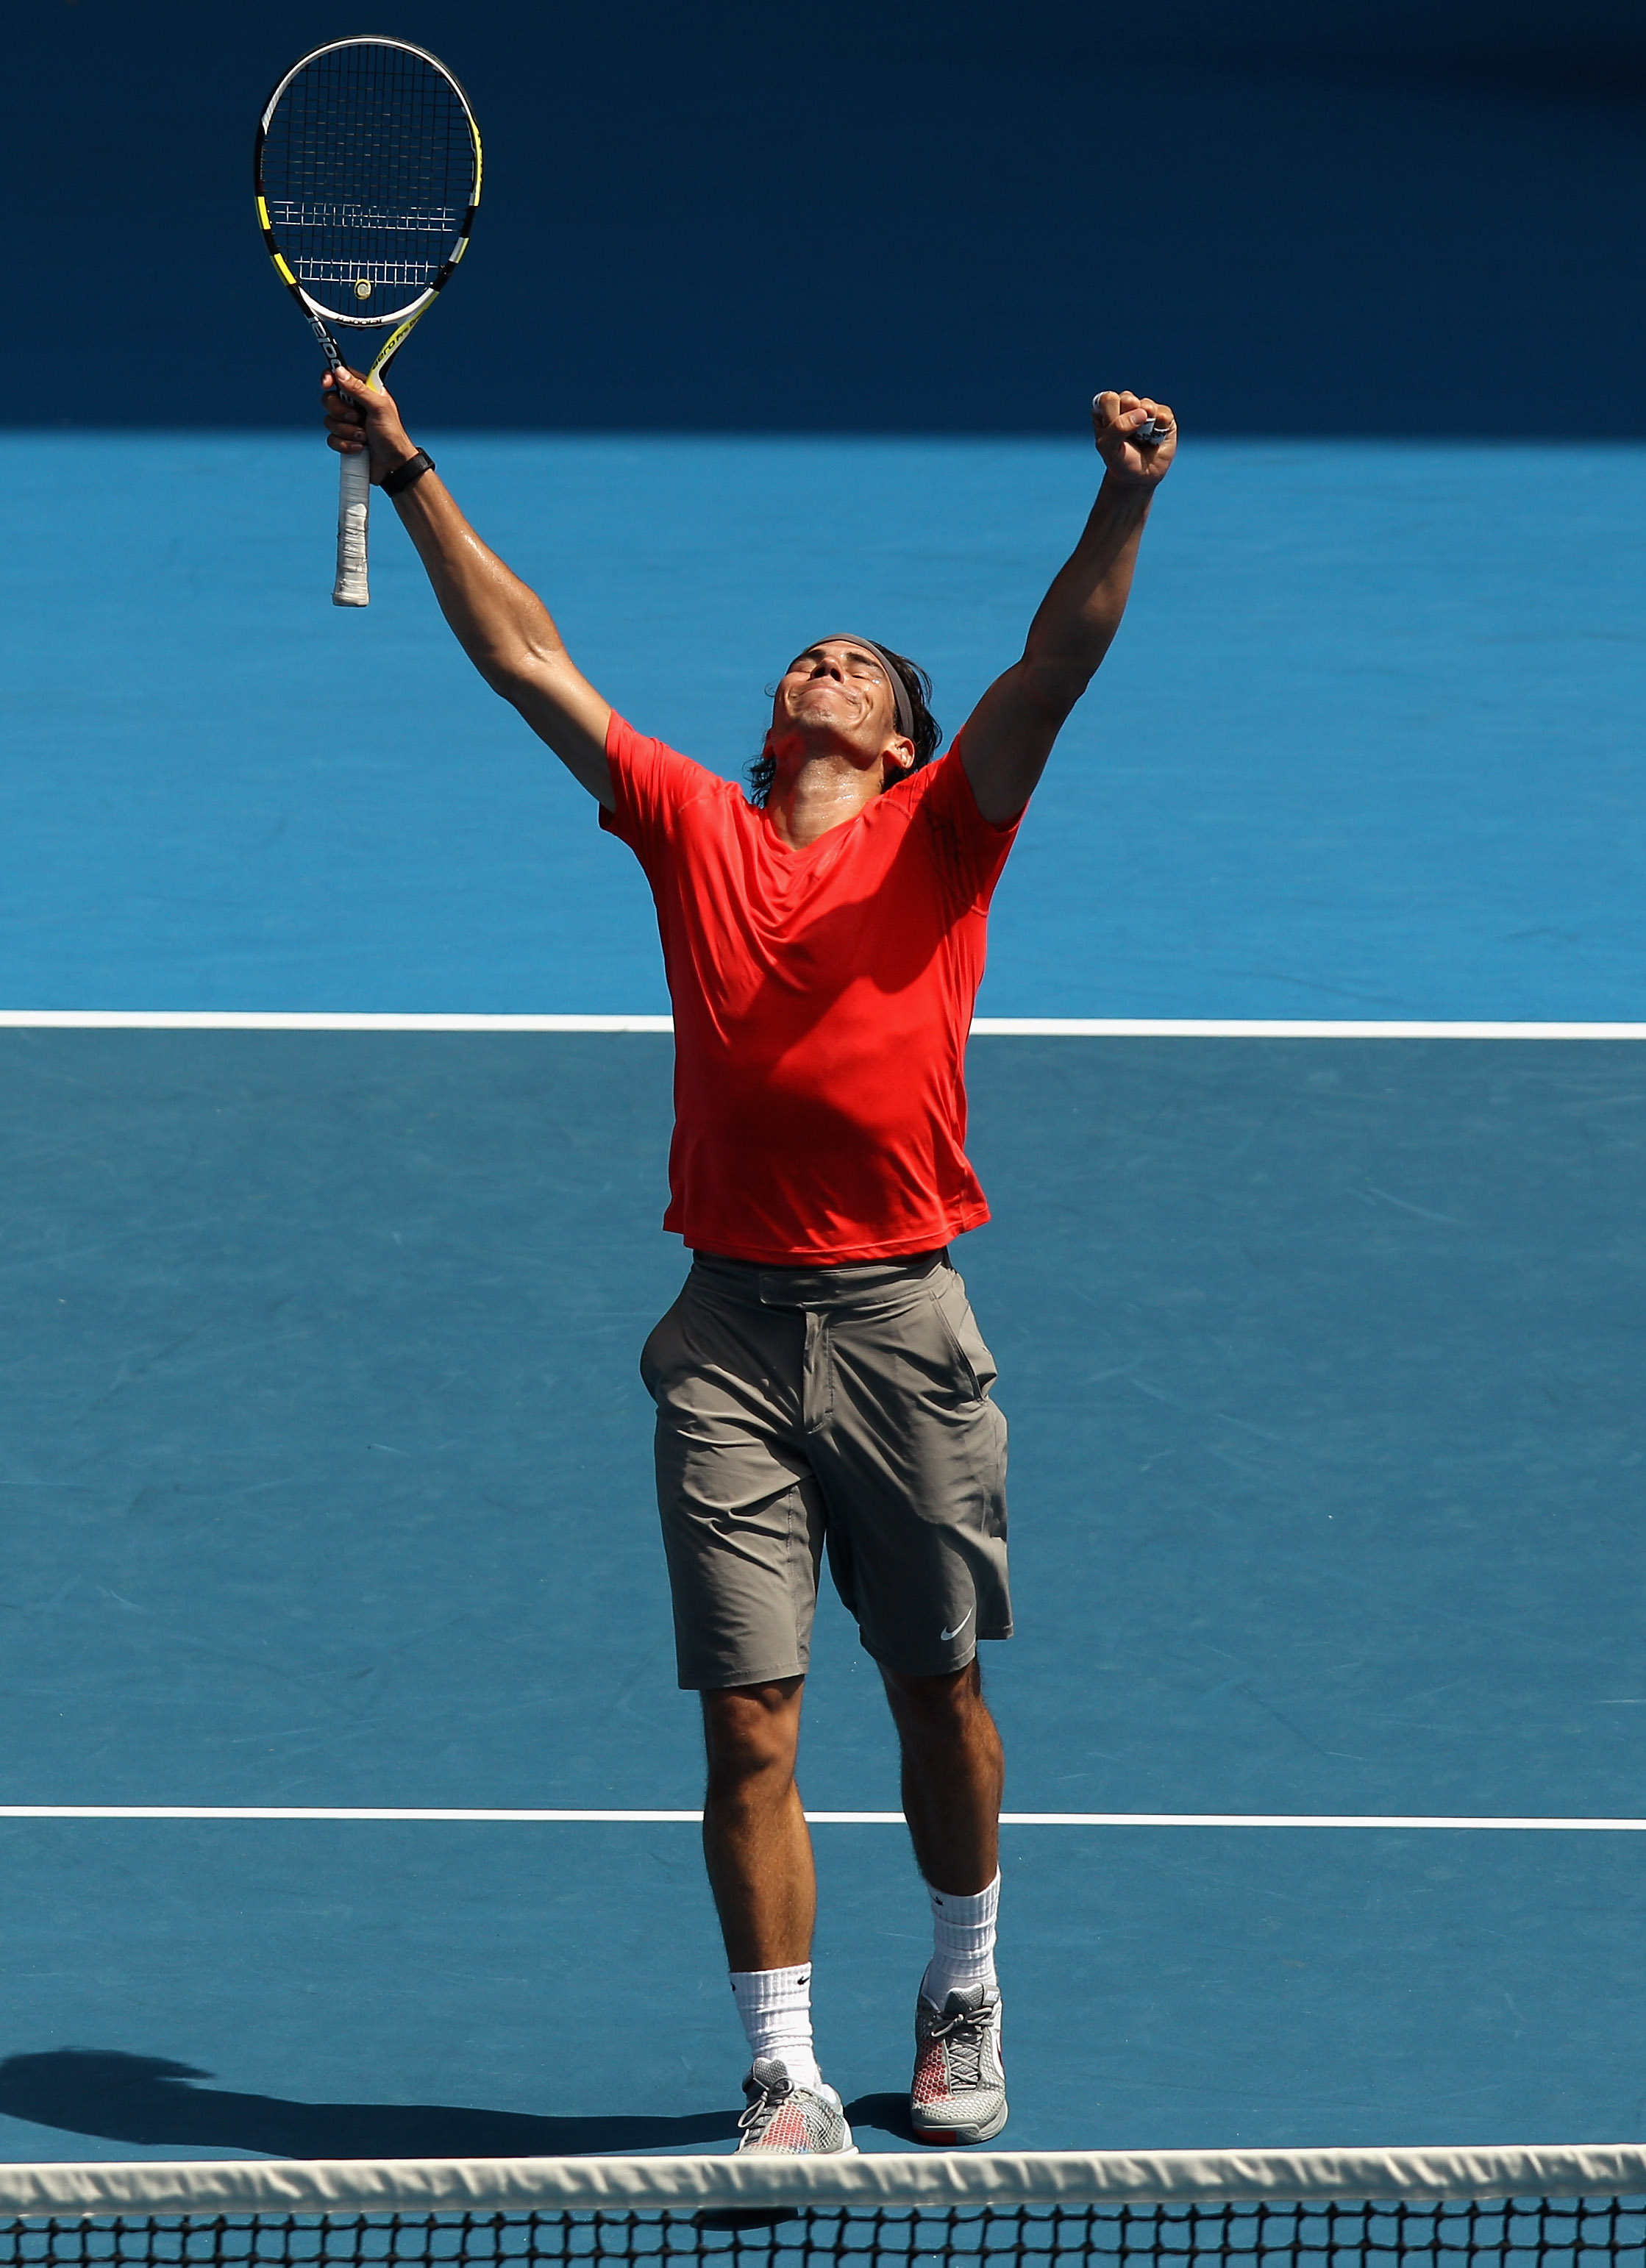 MELBOURNE, AUSTRALIA - JANUARY 16:  Rafael Nadal of Spaincelebrates a point during the 'Rally For Relief' charity exhibition match ahead of the 2011 Australian Open at Melbourne Park on January 16, 2011 in Melbourne, Australia.  (Photo by Mark Dadswell/Ge